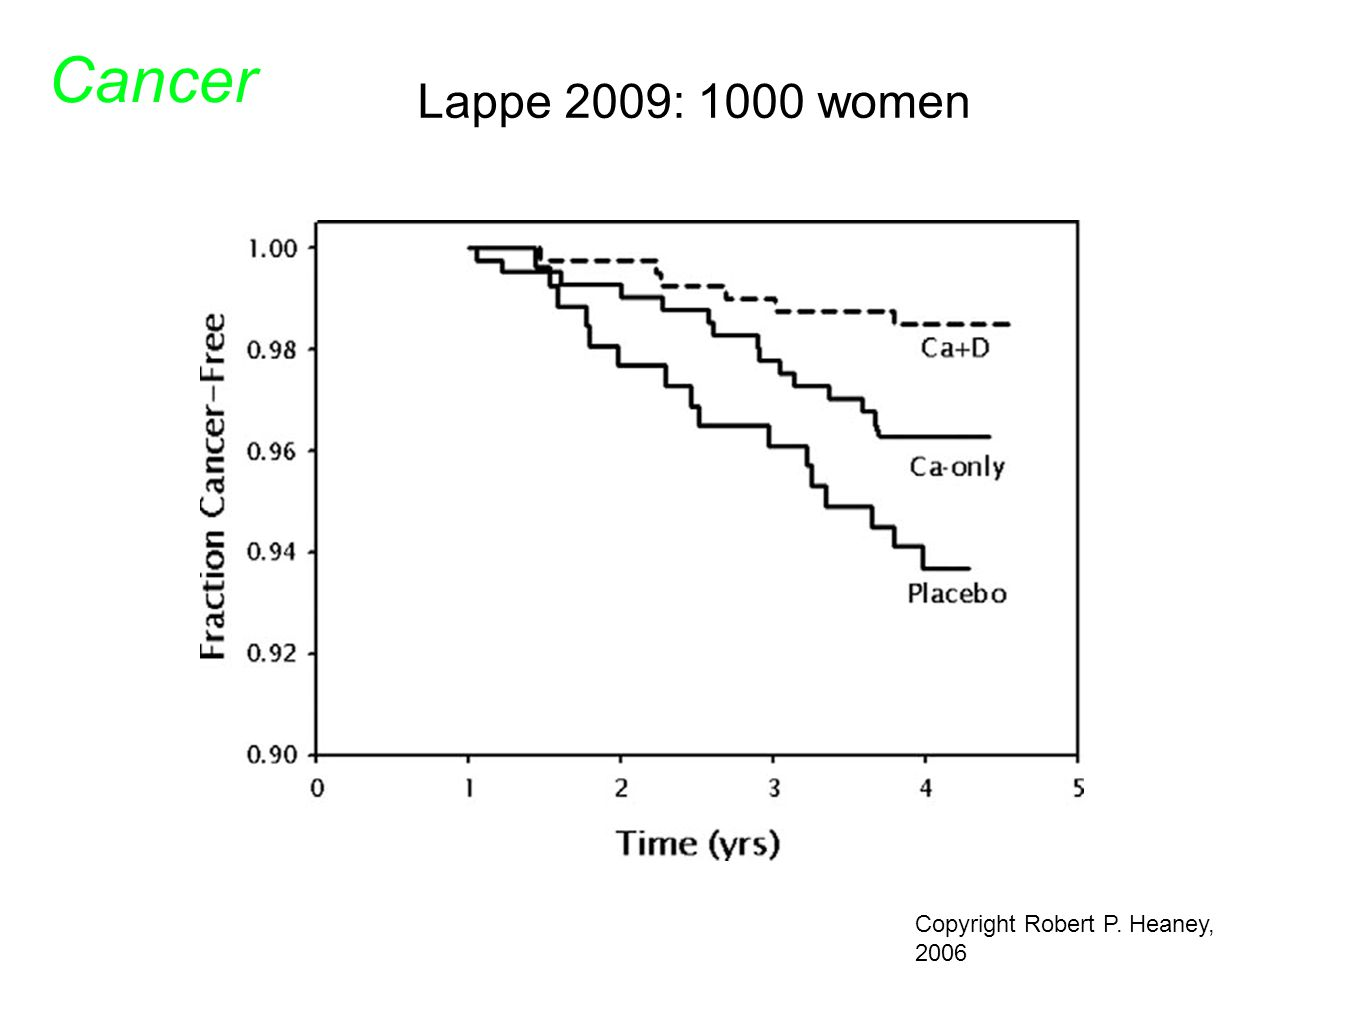 Copyright Robert P. Heaney, 2006 Lappe 2009: 1000 women Cancer